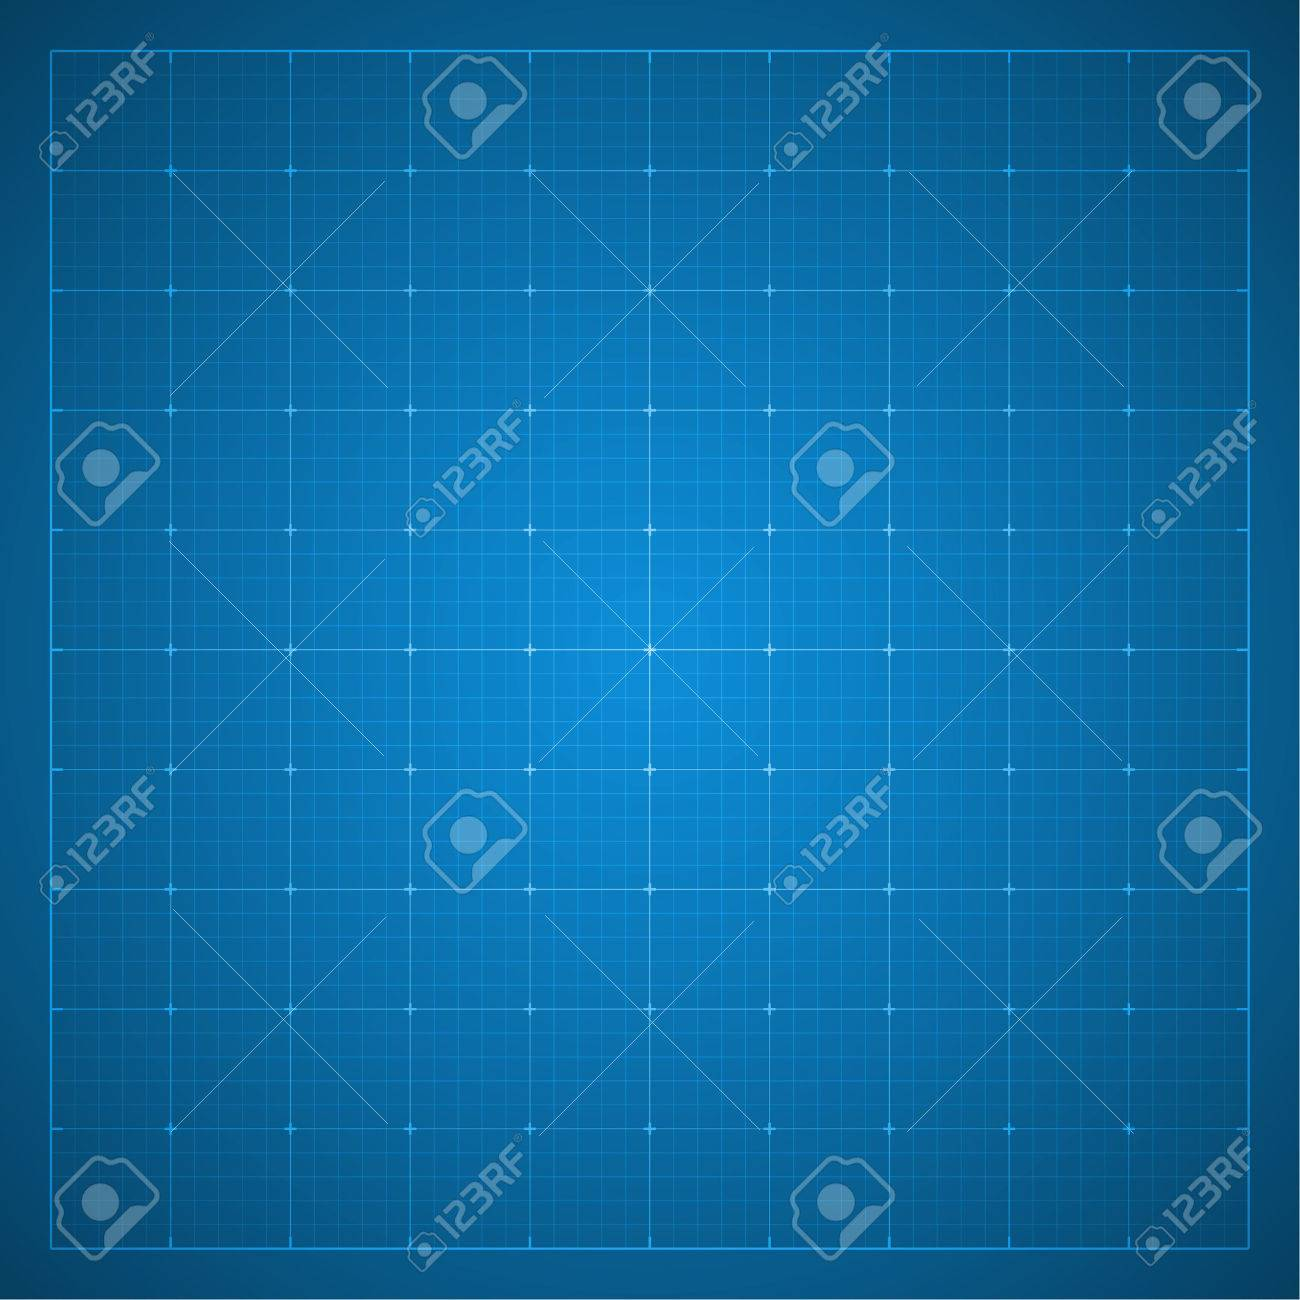 Paper blueprint background drawing paper for architectural paper blueprint background drawing paper for architectural engineering design work vector stock vector malvernweather Choice Image